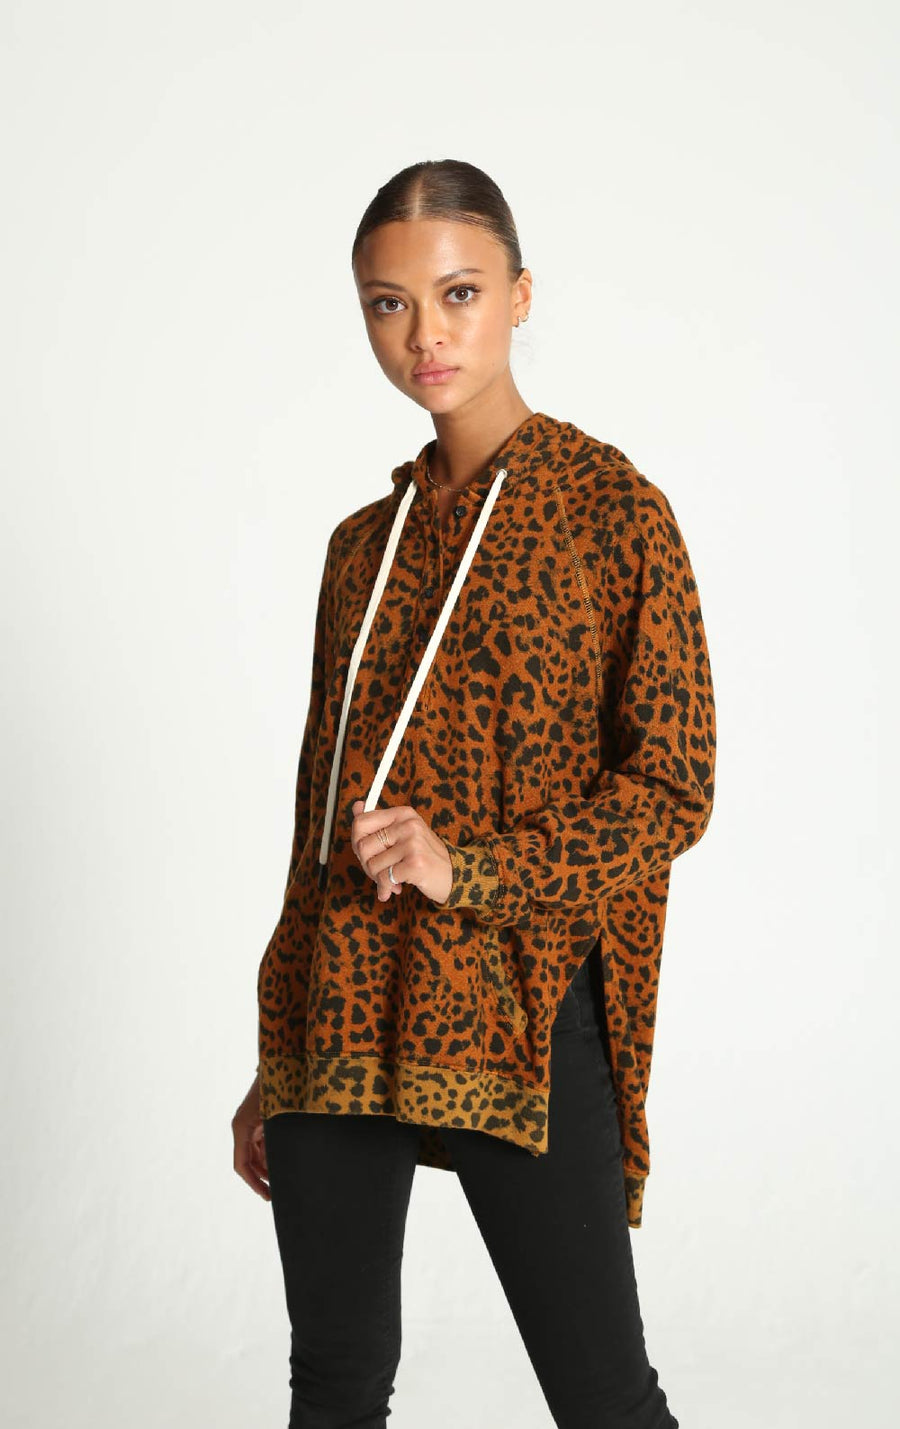 fixxation boutique, domino hoodie sweatershirt, leopard print, button detailing, side slits, white drawstrings, sarasota